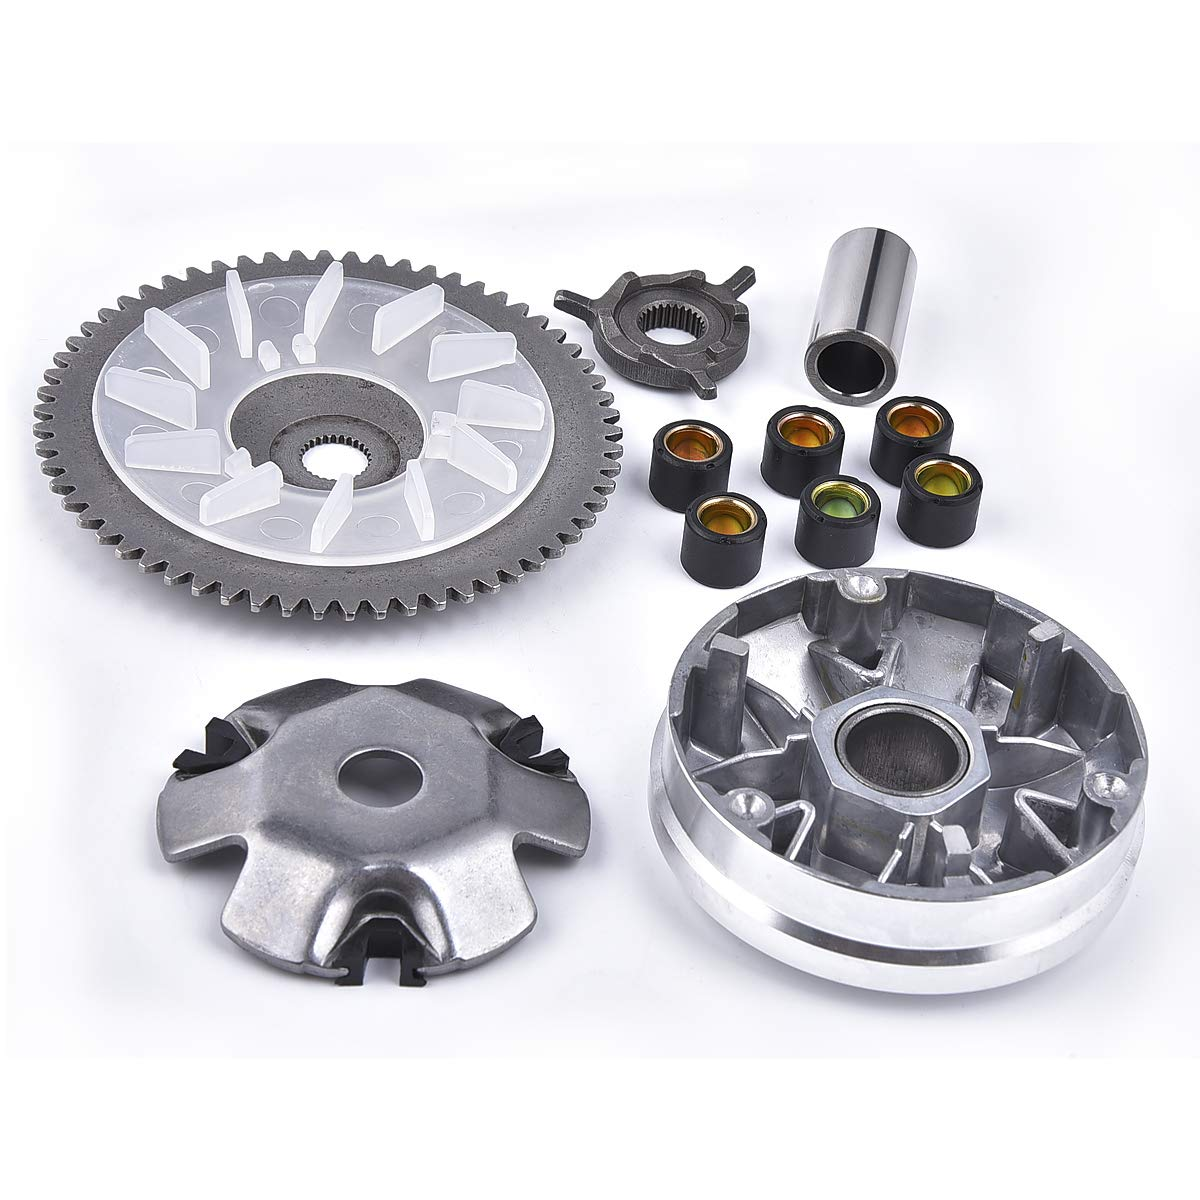 Primary Clutch Variator Kit for Kymco Agility People Like 4T 50cc 4 Stroke Scooter by MTATCN